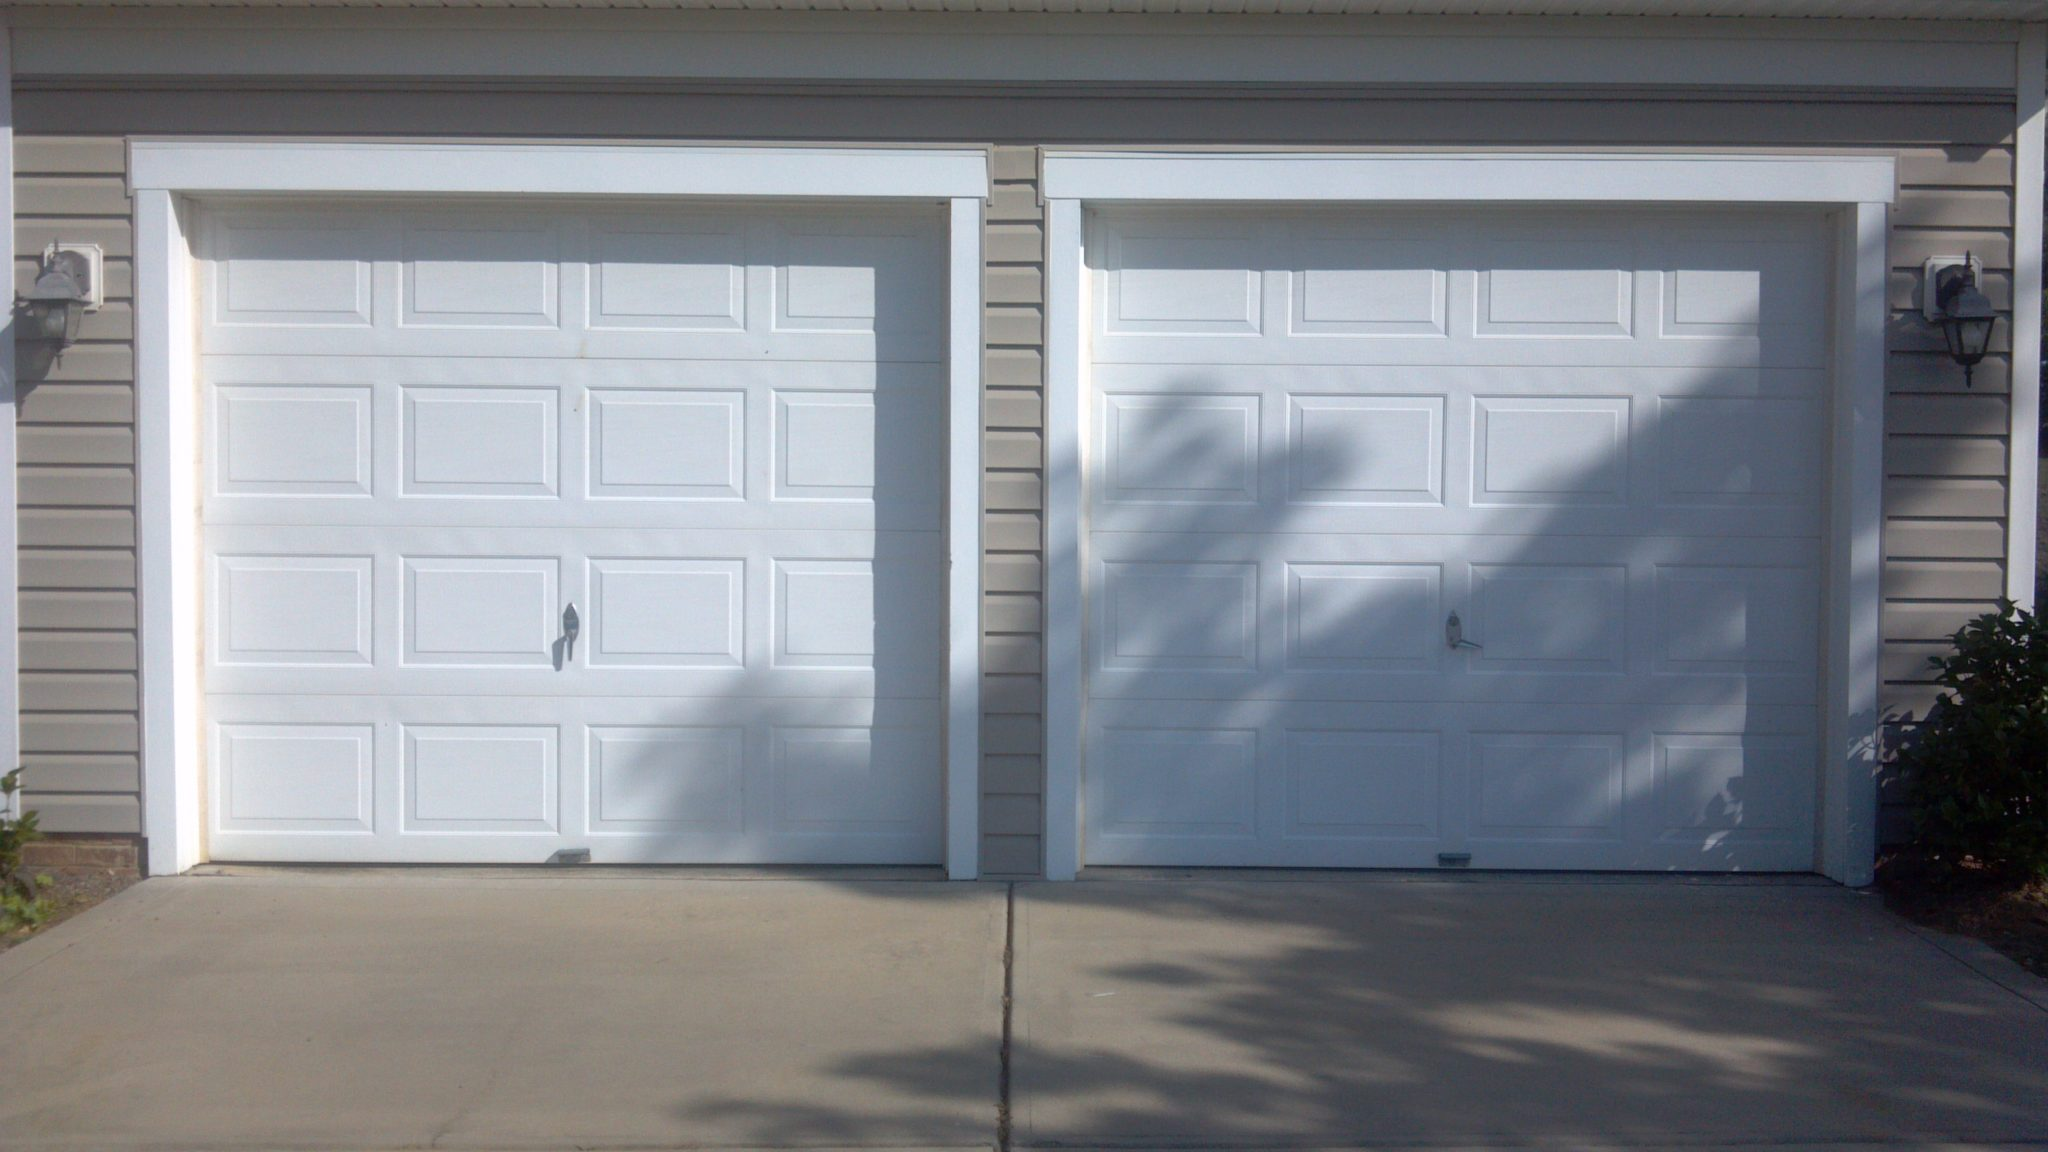 1836 #556276 Two Single Garage Doors Before A Plus Garage Doors wallpaper Grarage Doors 38153264